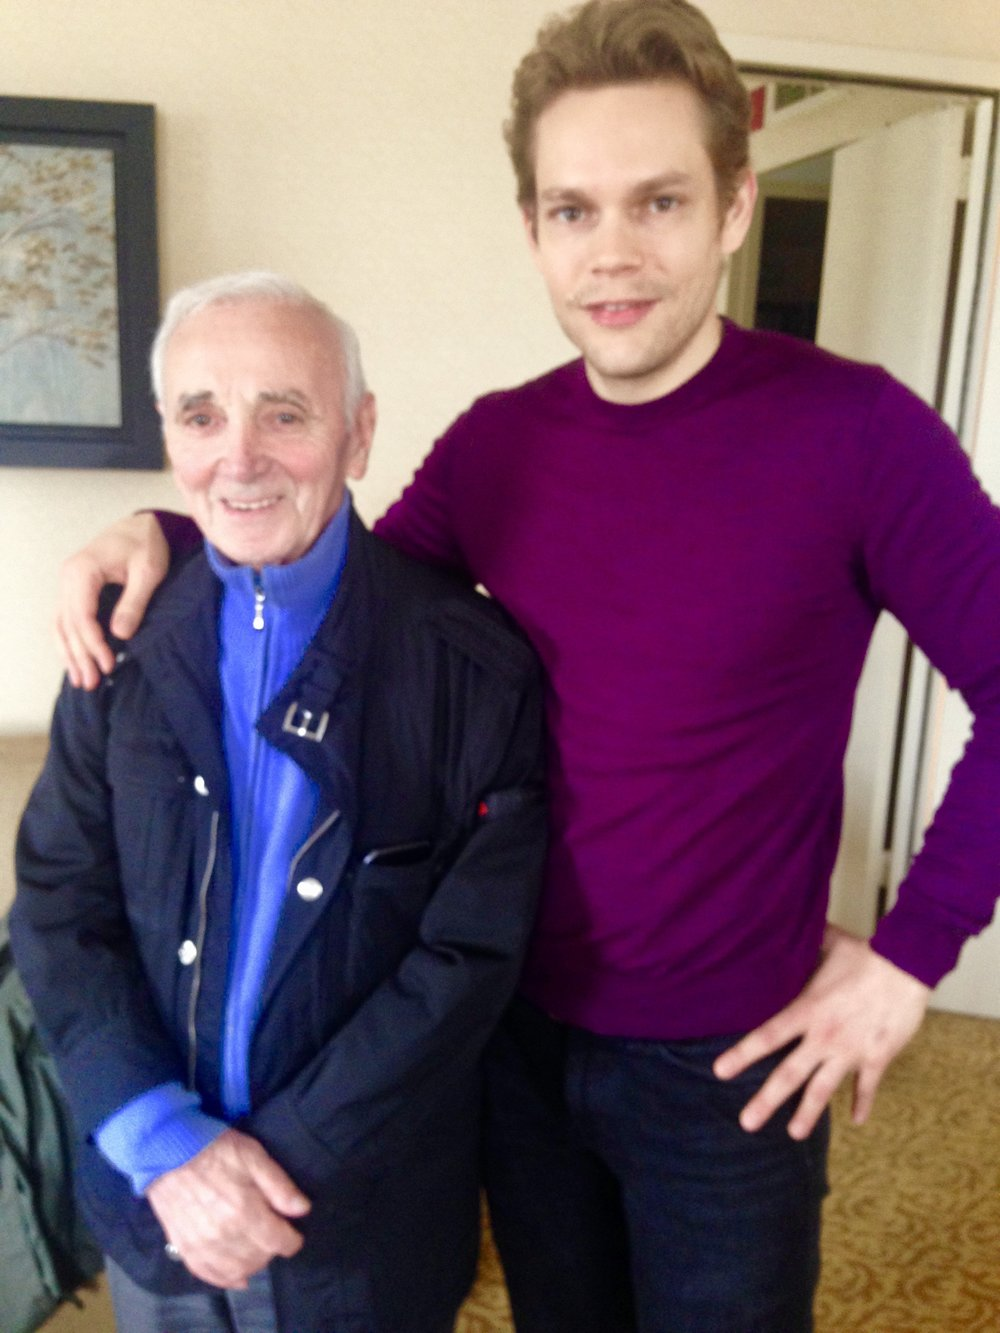 Charles Aznavour in New Haven in 2016 with his then 38-year-old son, Nicolas, a neuroscientist who put his career on hold to tend to his father and his touring schedule. Photo by Frank Rizzo.